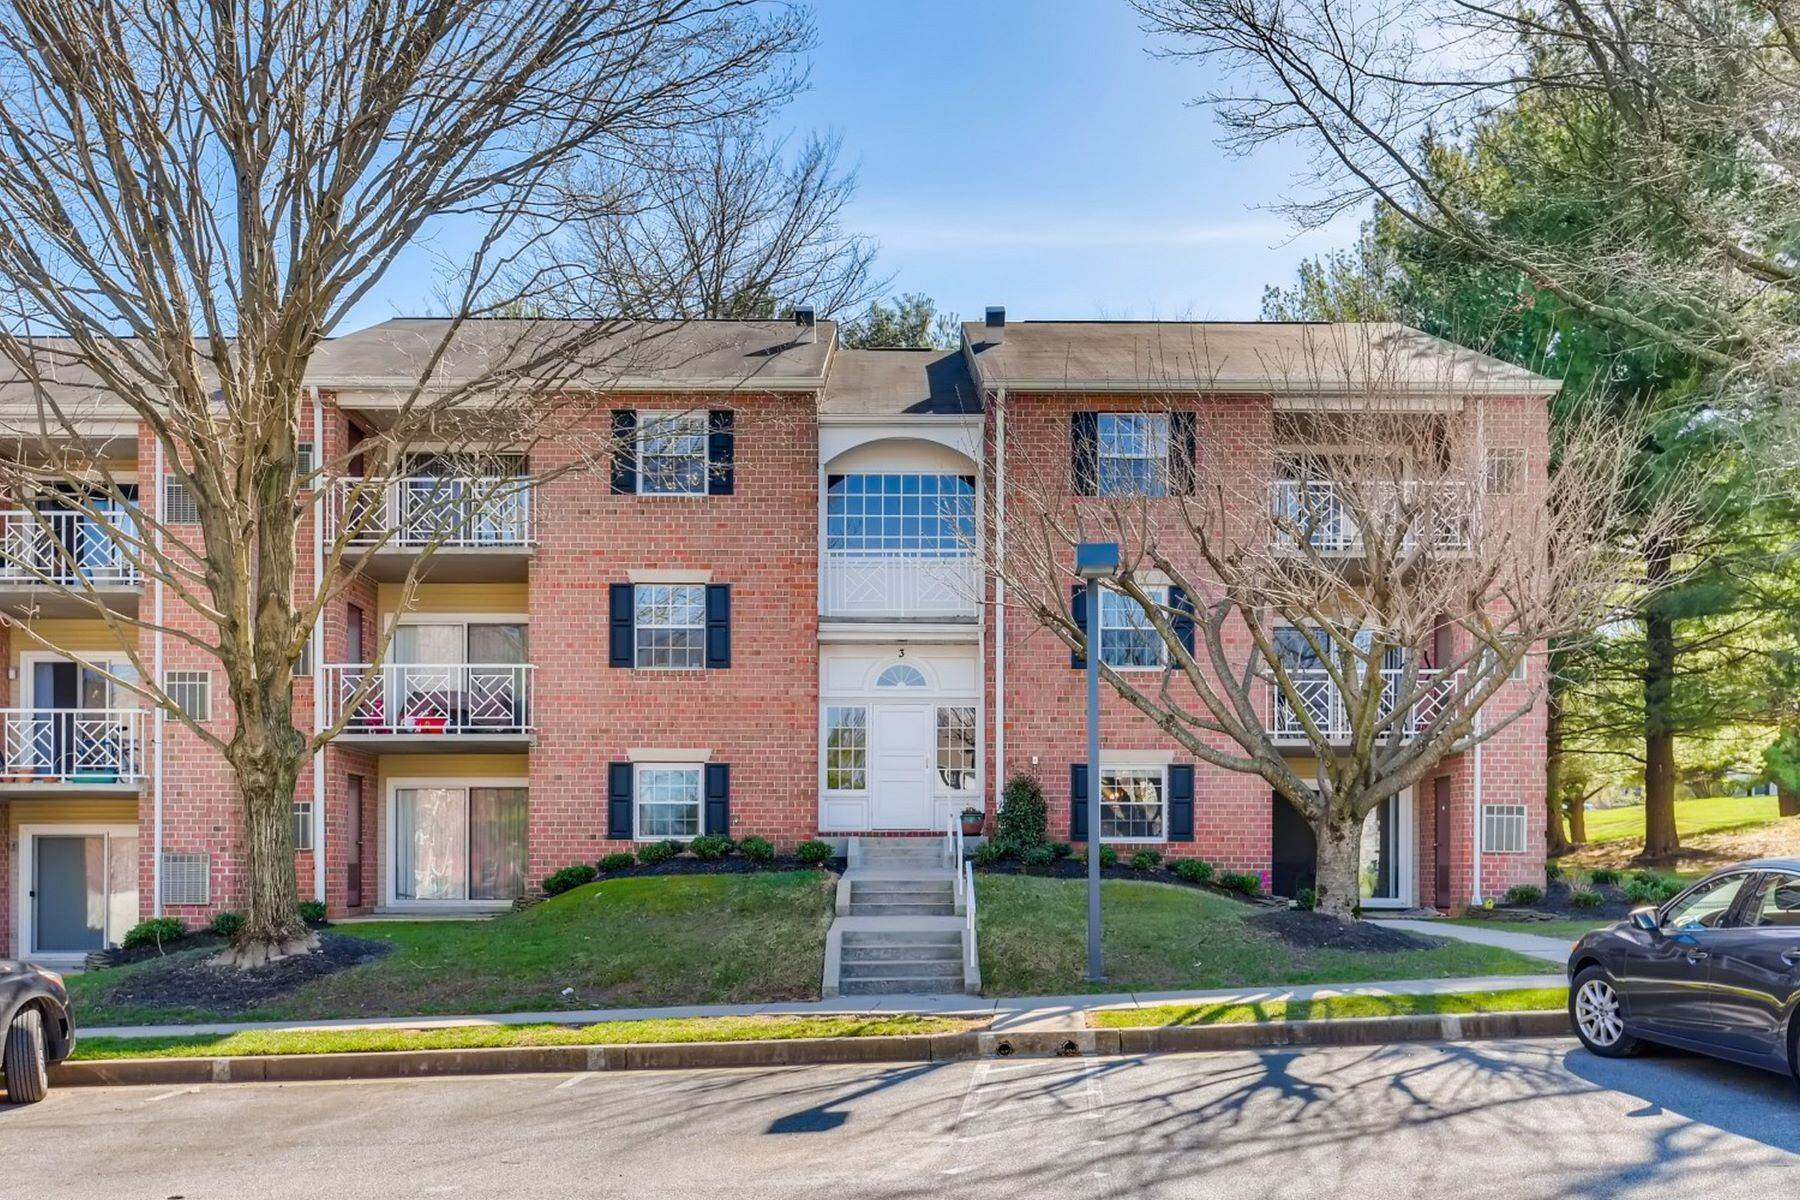 Condominiums for Sale at Mays Chapel Condominium 3 Gandson Court #301 Lutherville Timonium, Maryland 21093 United States